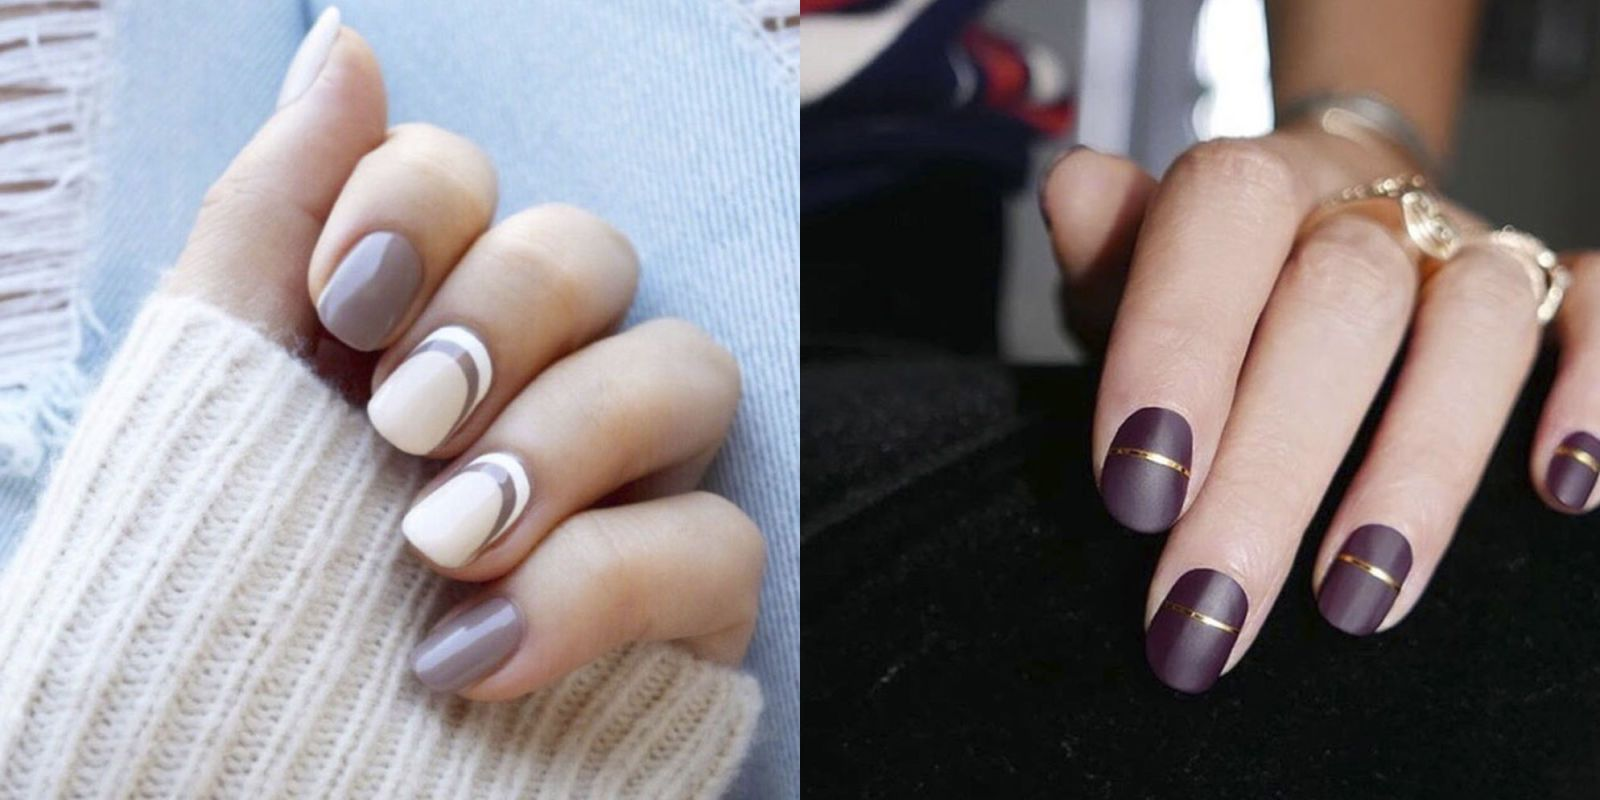 Let your nails be an instant accessory on days too cold to even get dressed. : nail decorating ideas - www.pureclipart.com